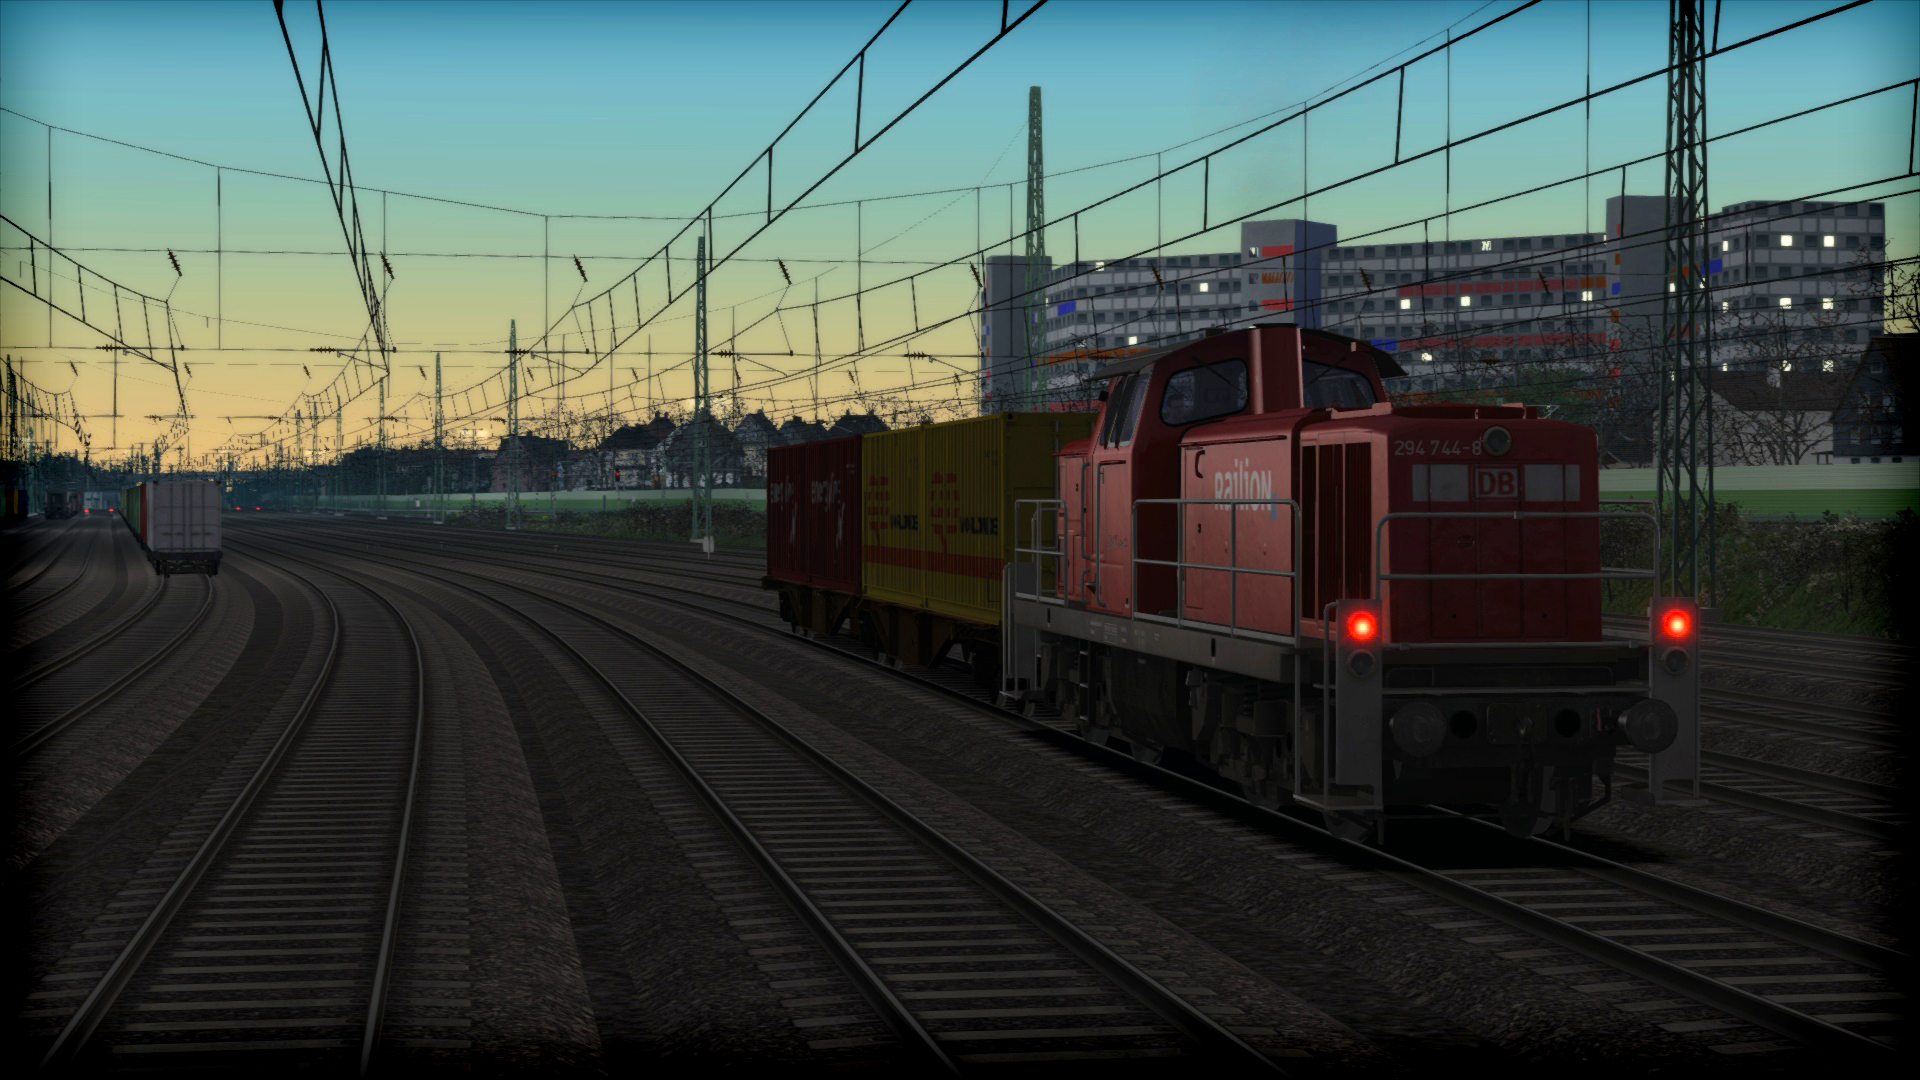 Train Simulator: Weardale Teesdale Network Route @ RU